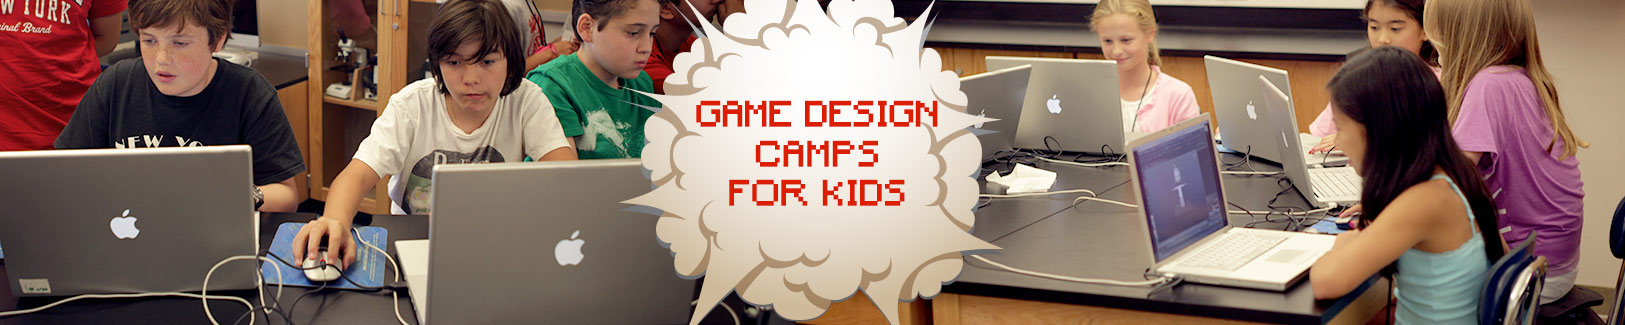 game-design-kids-camps-banner